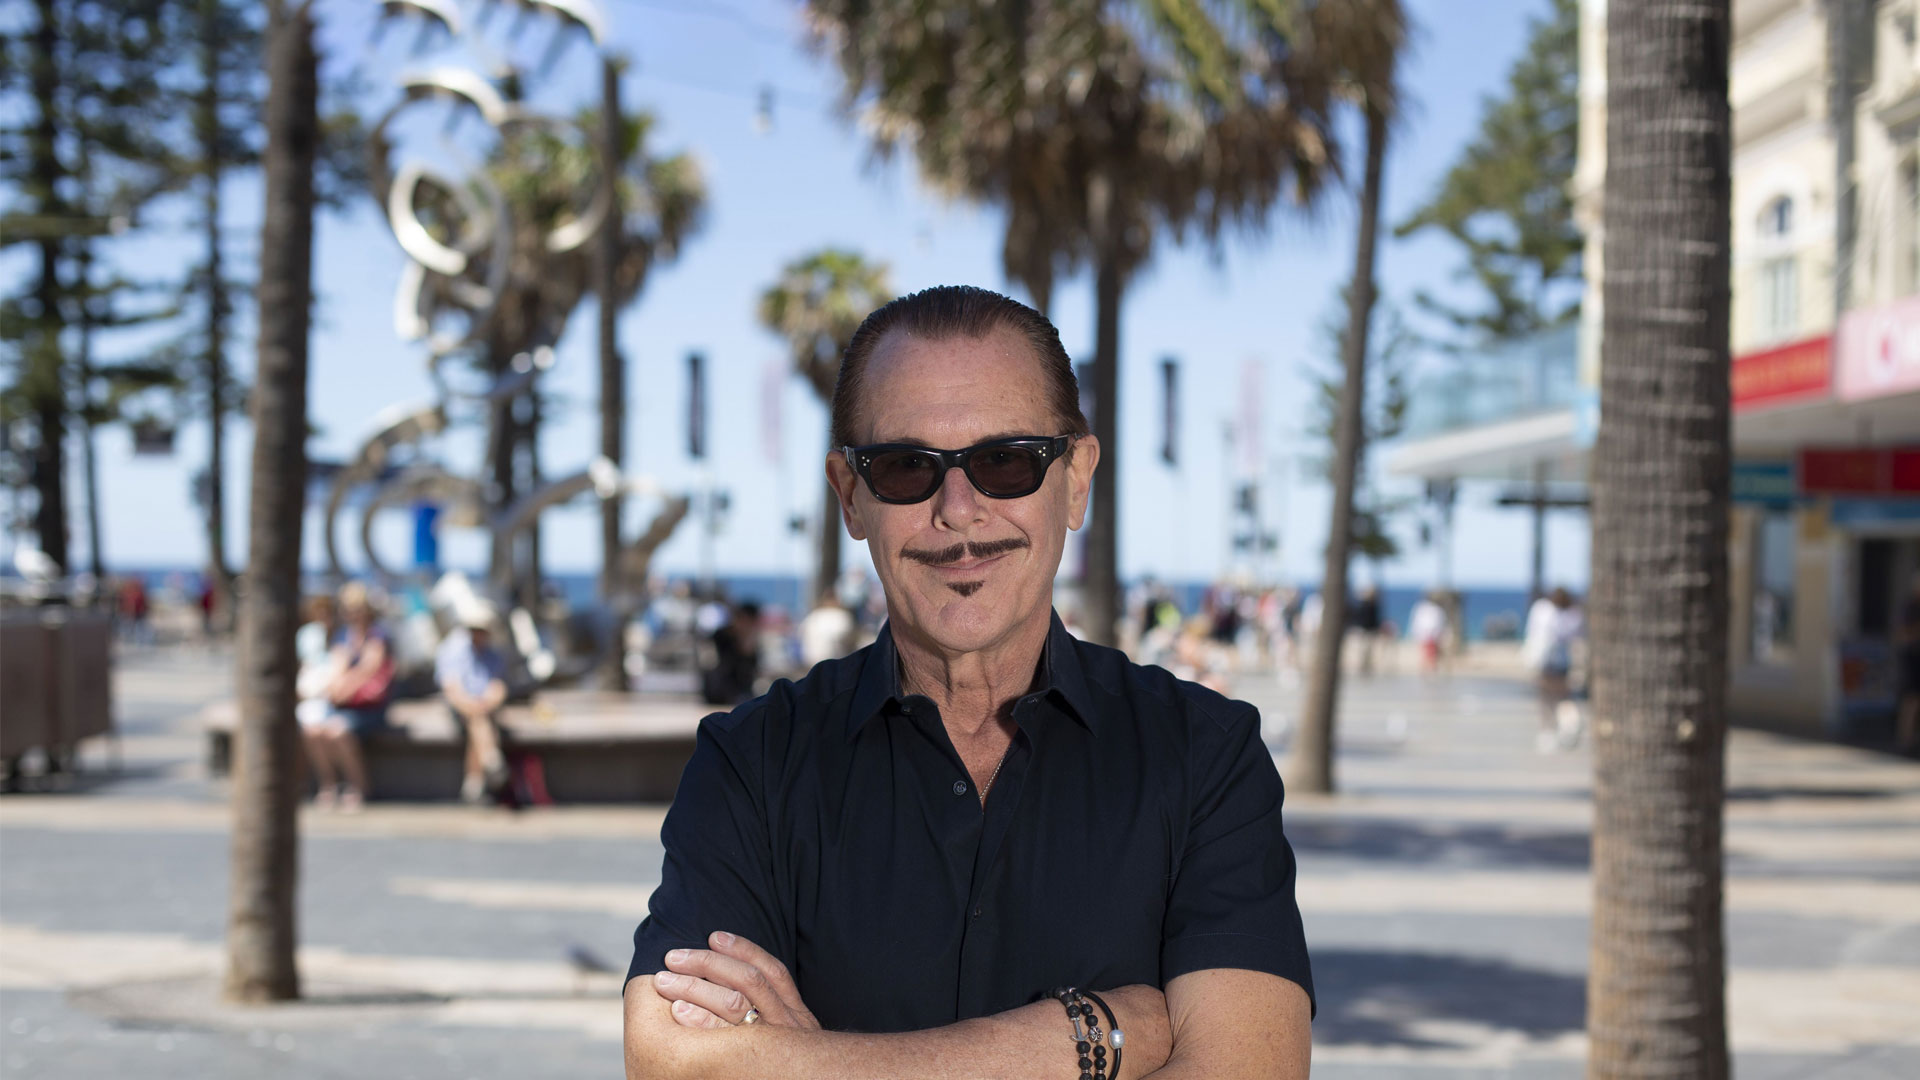 INXS star Kirk Pengilly reveals how glaucoma almost blinded him